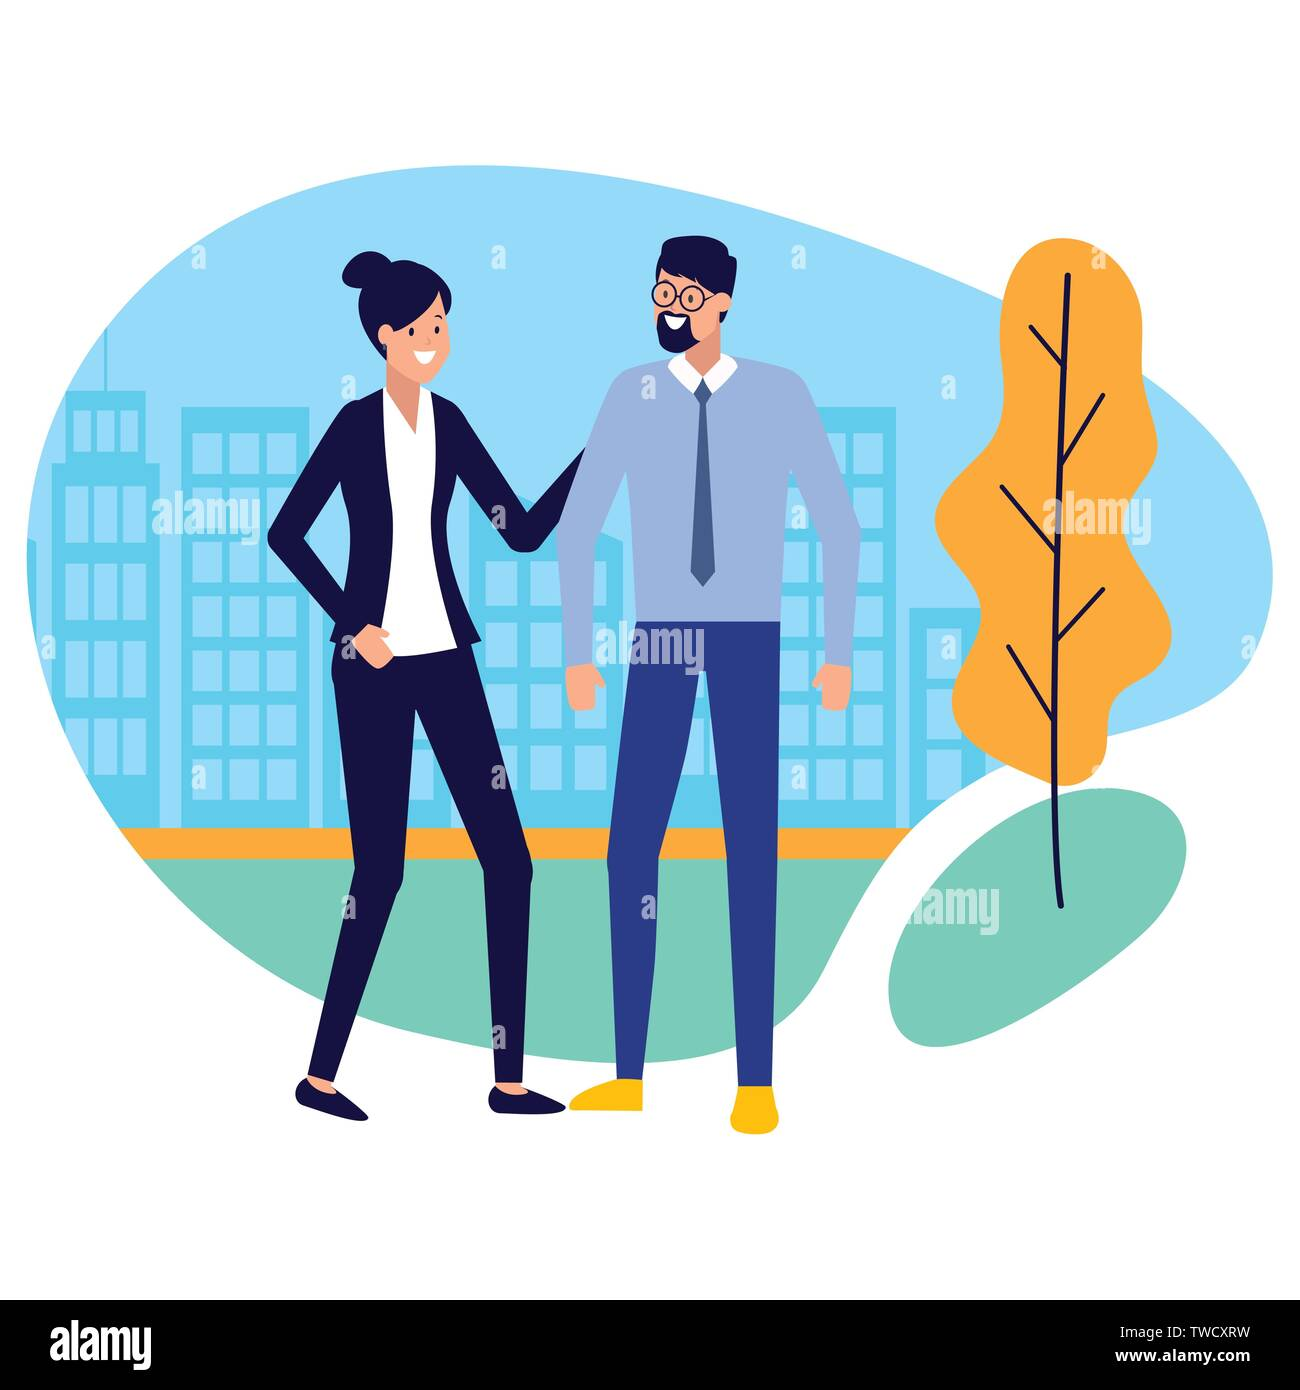 business man and woman city street vector illustration - Stock Image